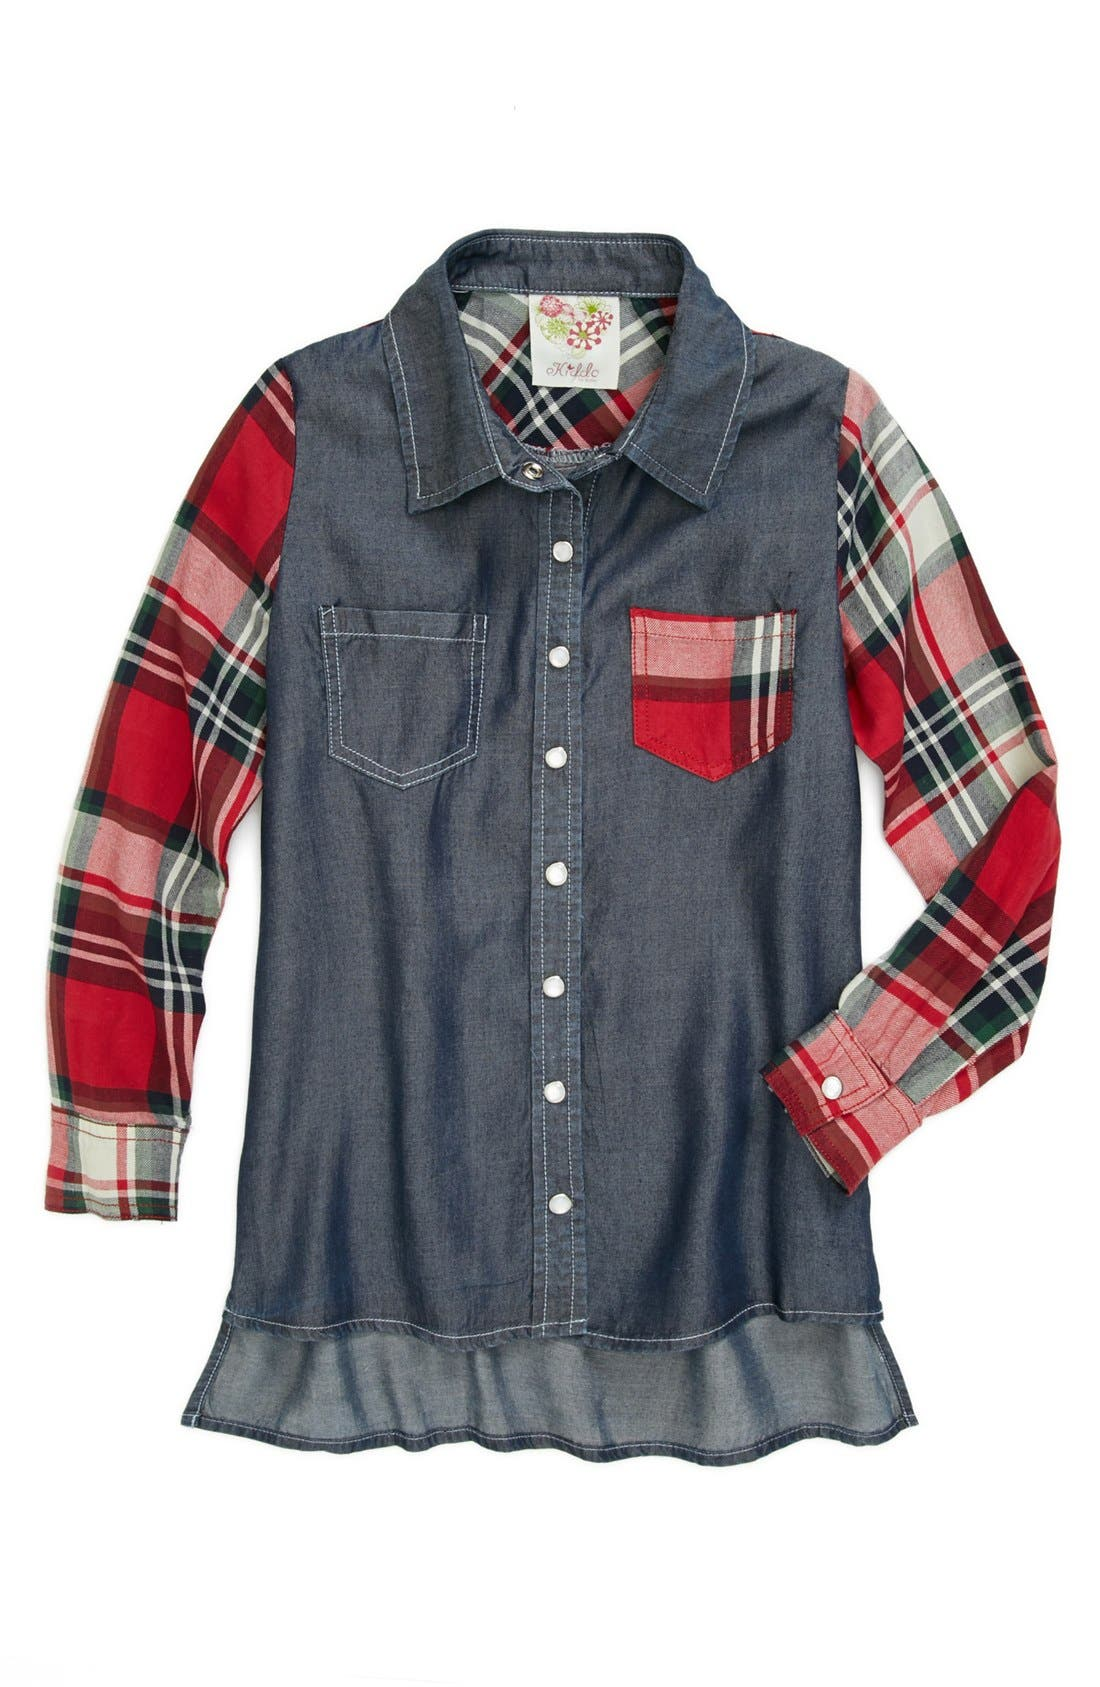 Main Image - Kiddo Denim & Plaid Top (Big Girls)